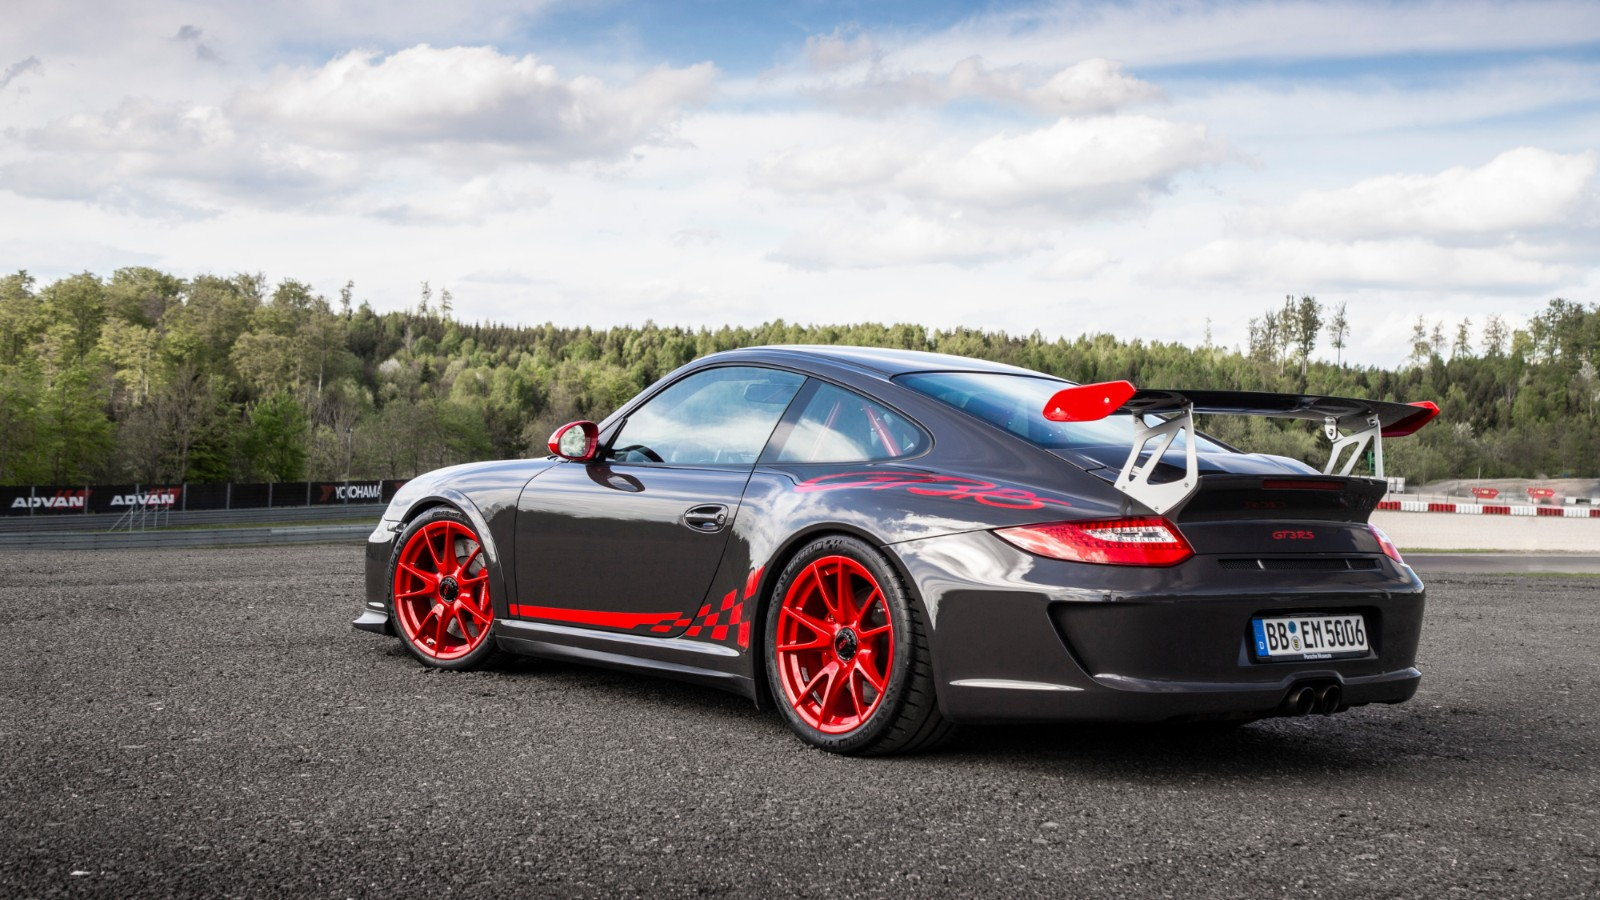 Porsche 997 Gt3 Vs Turbo Which Is Right For You Rennlist